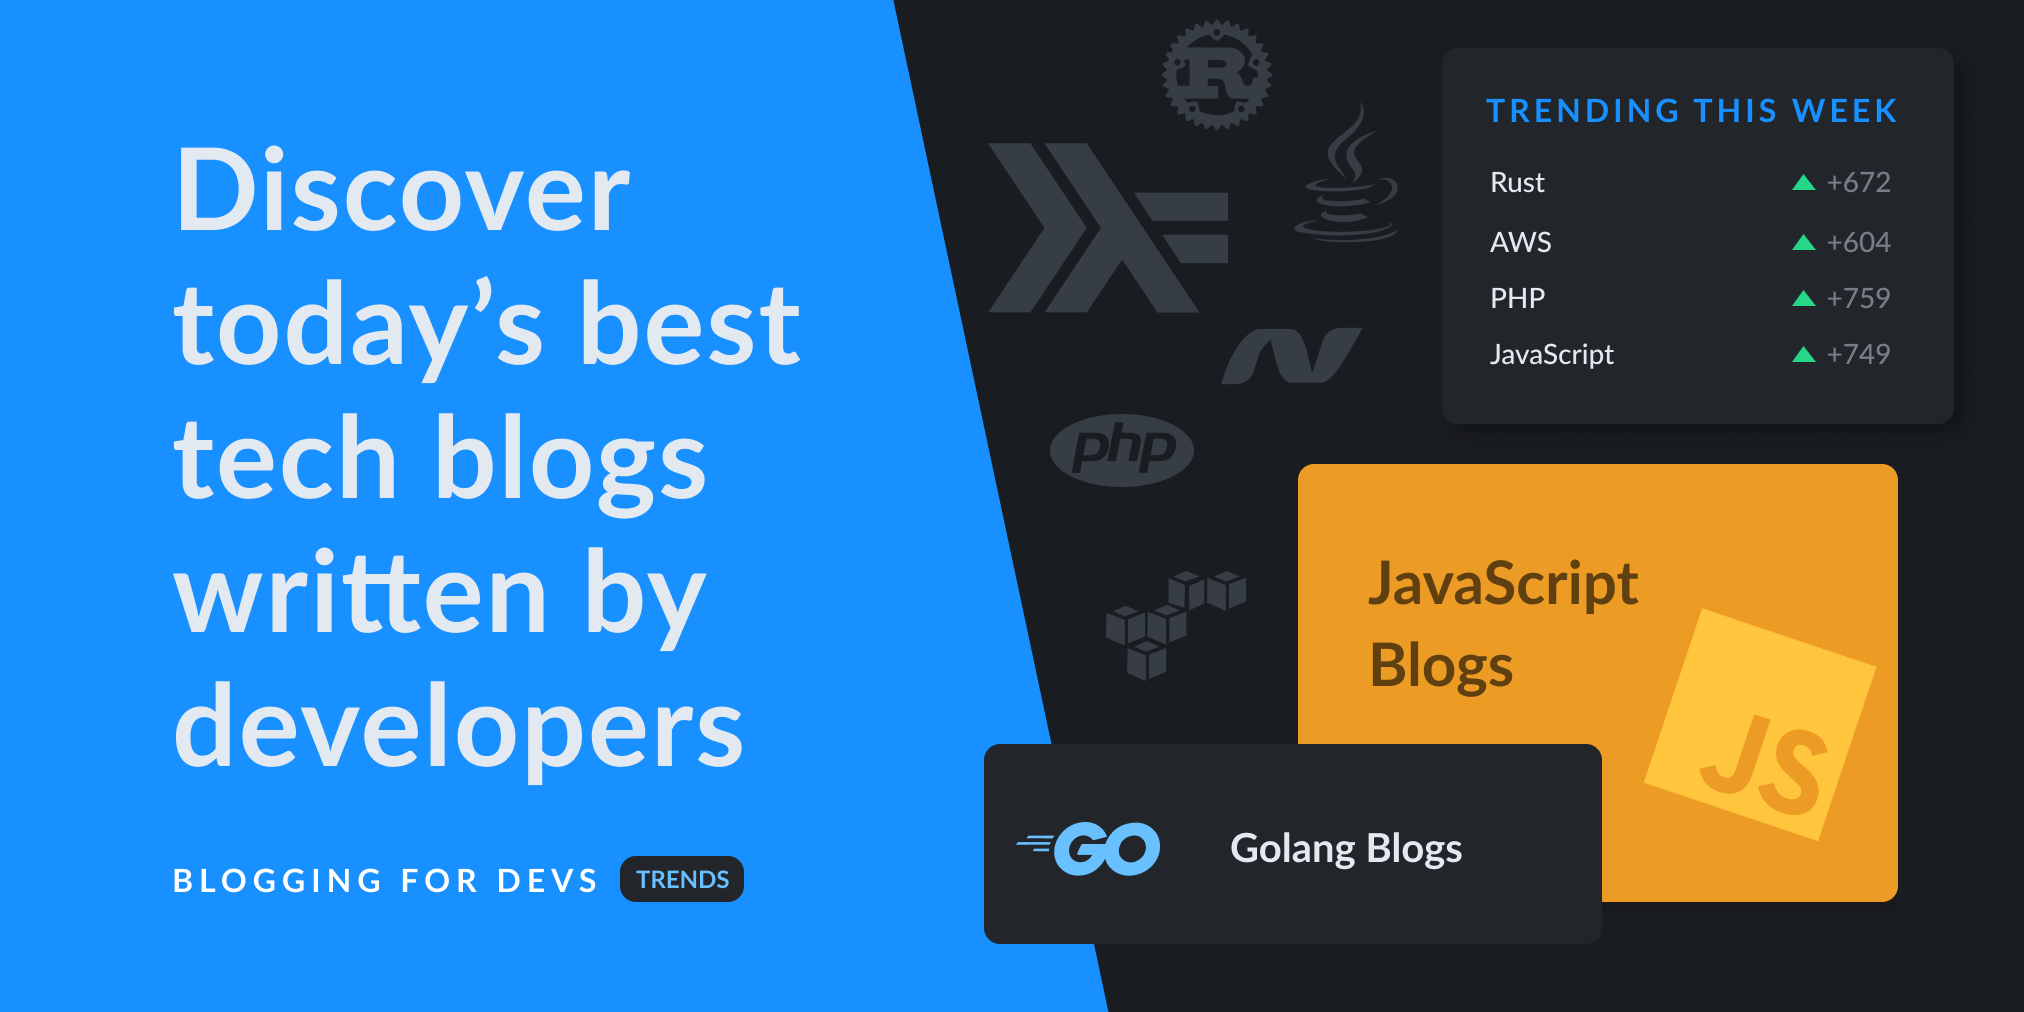 Blogging for Devs Trends